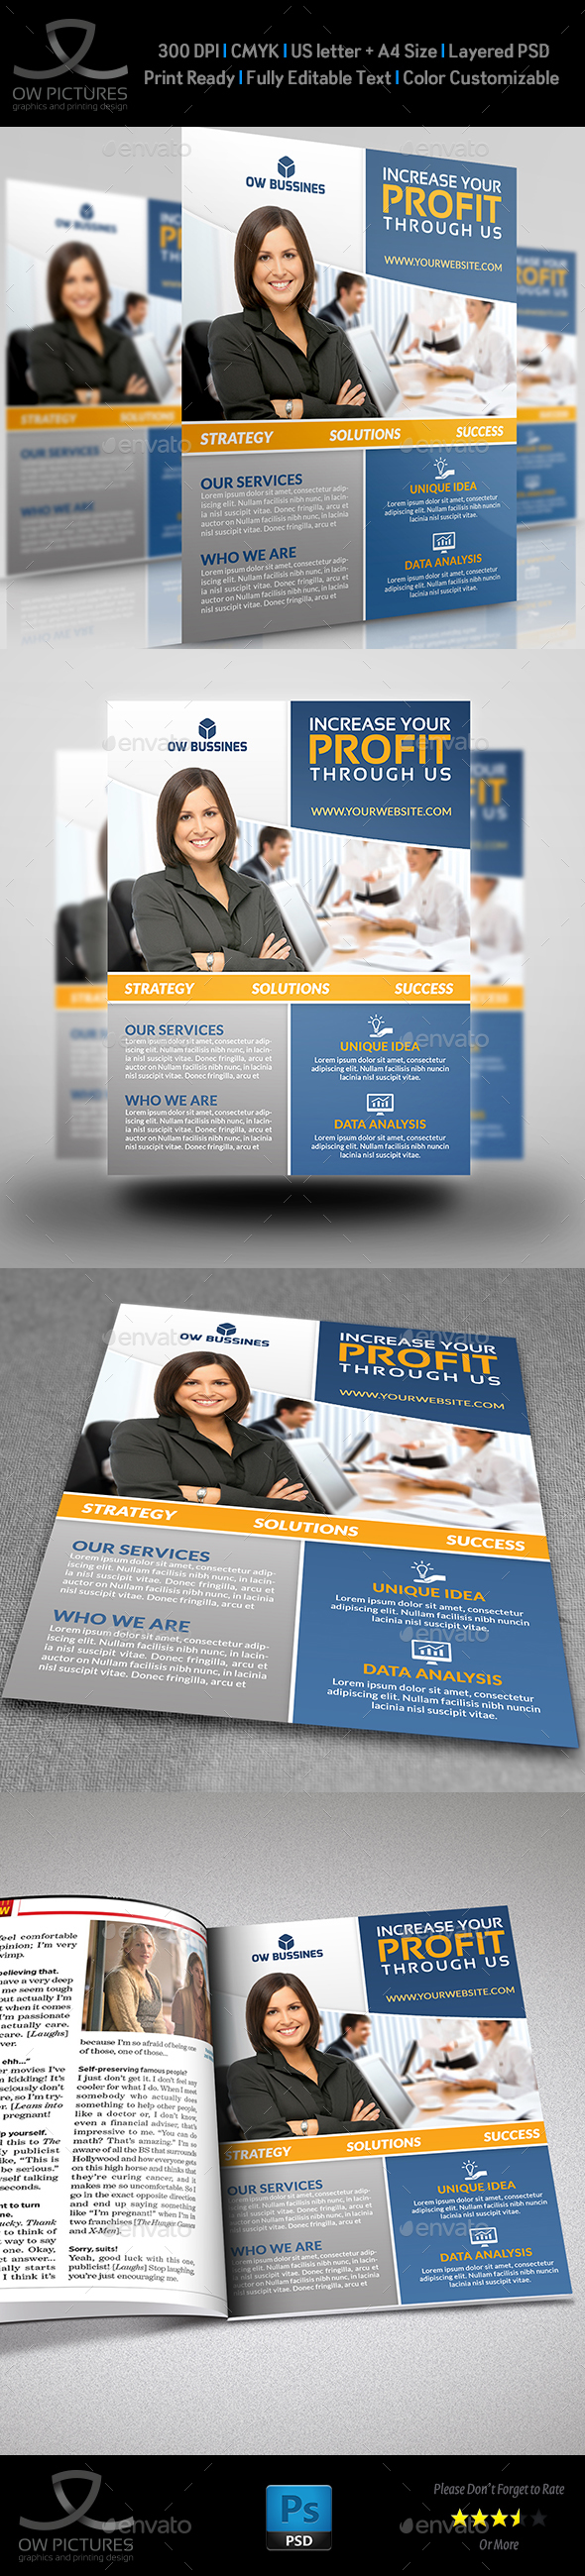 Corporate Business Flyer Template Vol.18 - Corporate Flyers